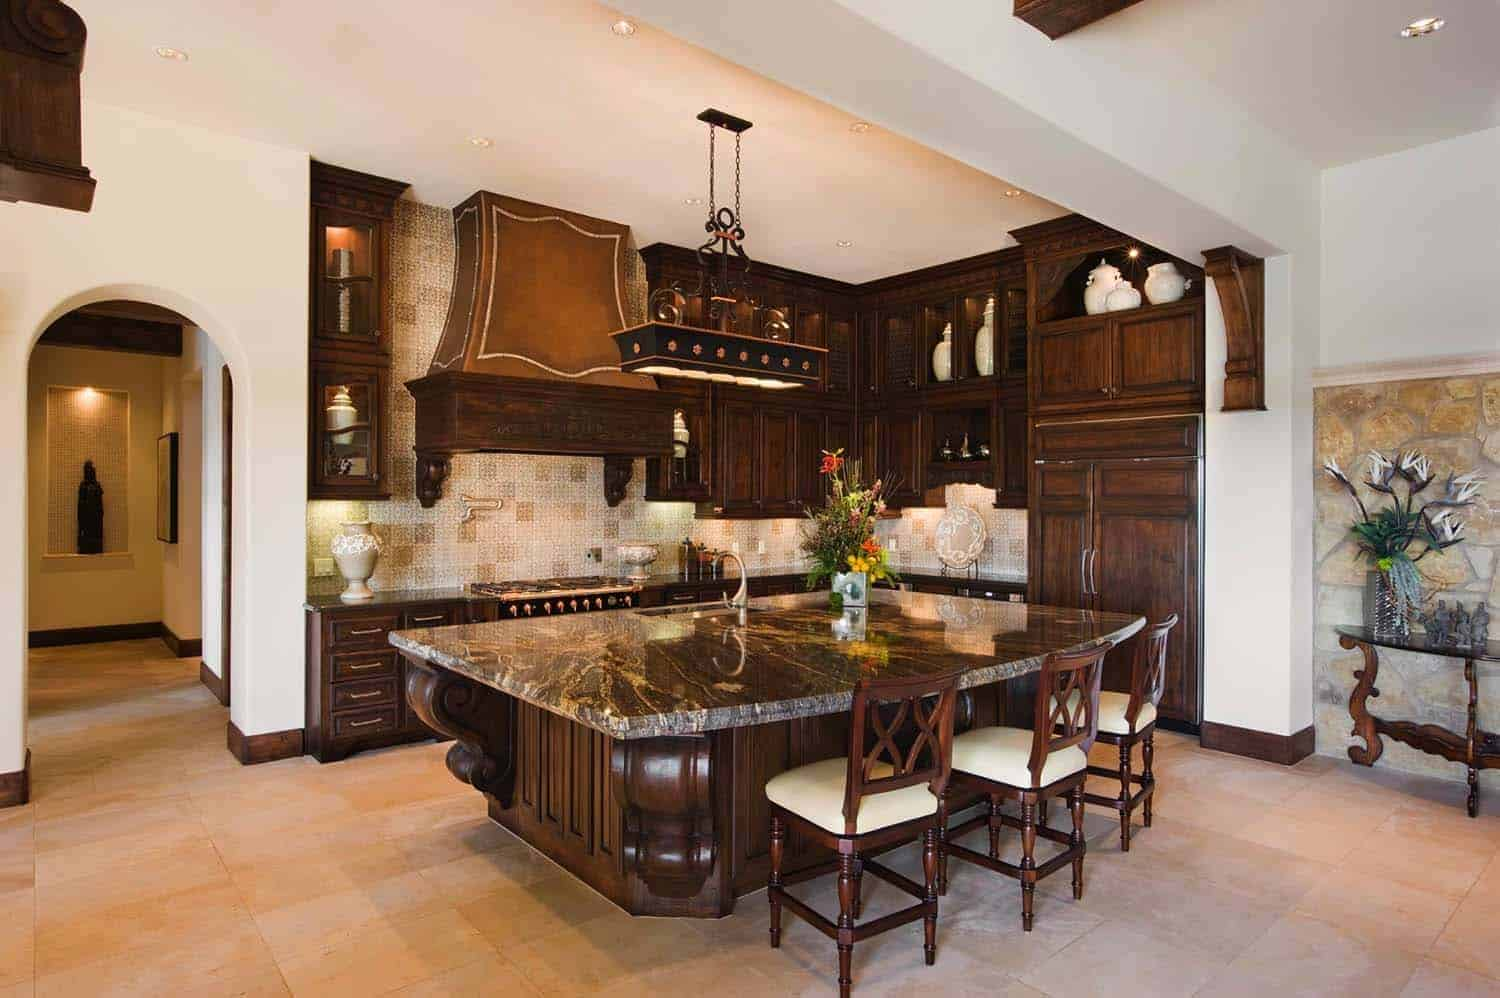 santa-barbara-style-kitchen